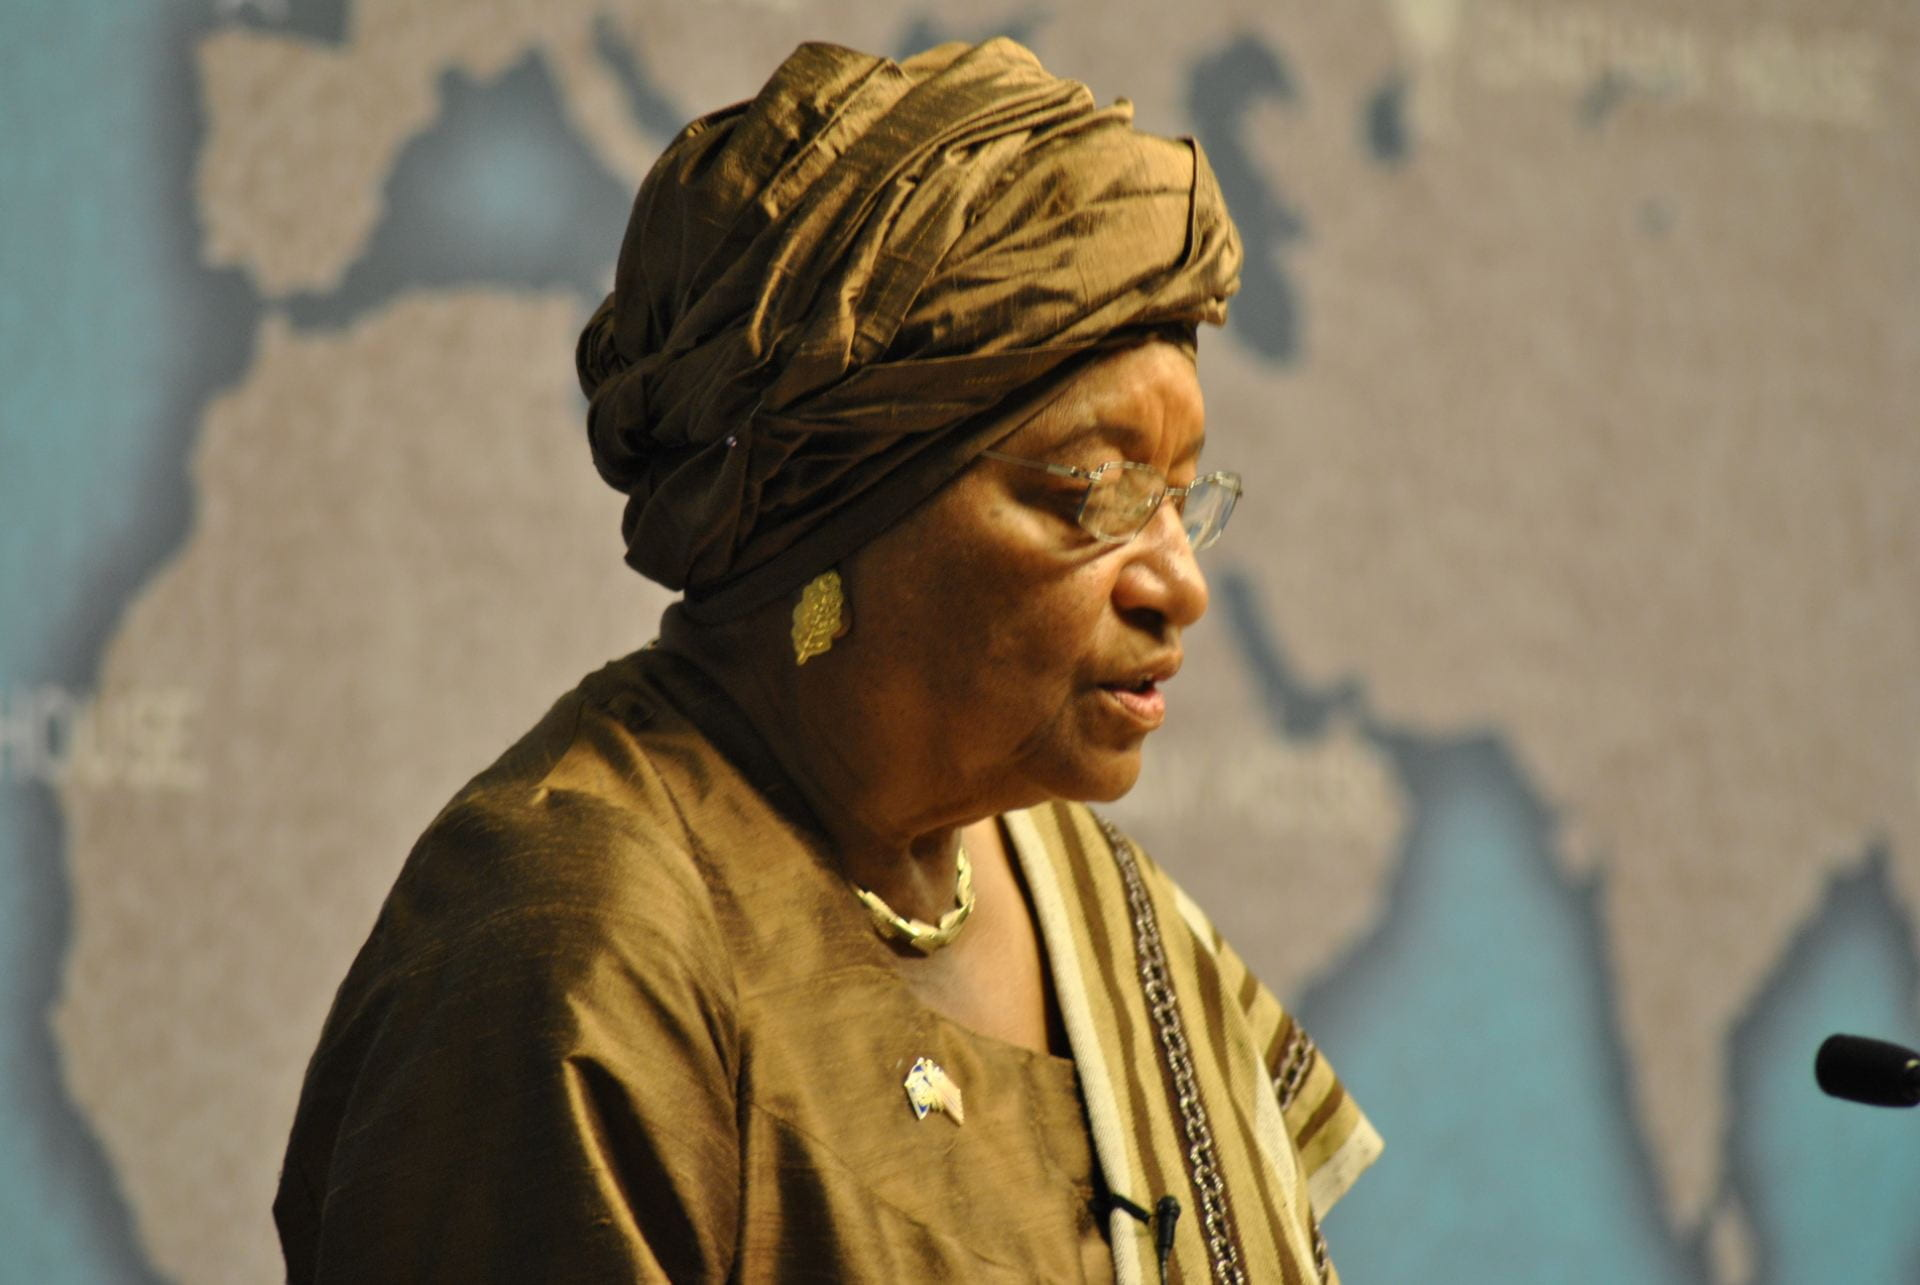 The President of Liberia, HE Ellen Johnson Sirleaf. Source: Chatham House, Creative Commons